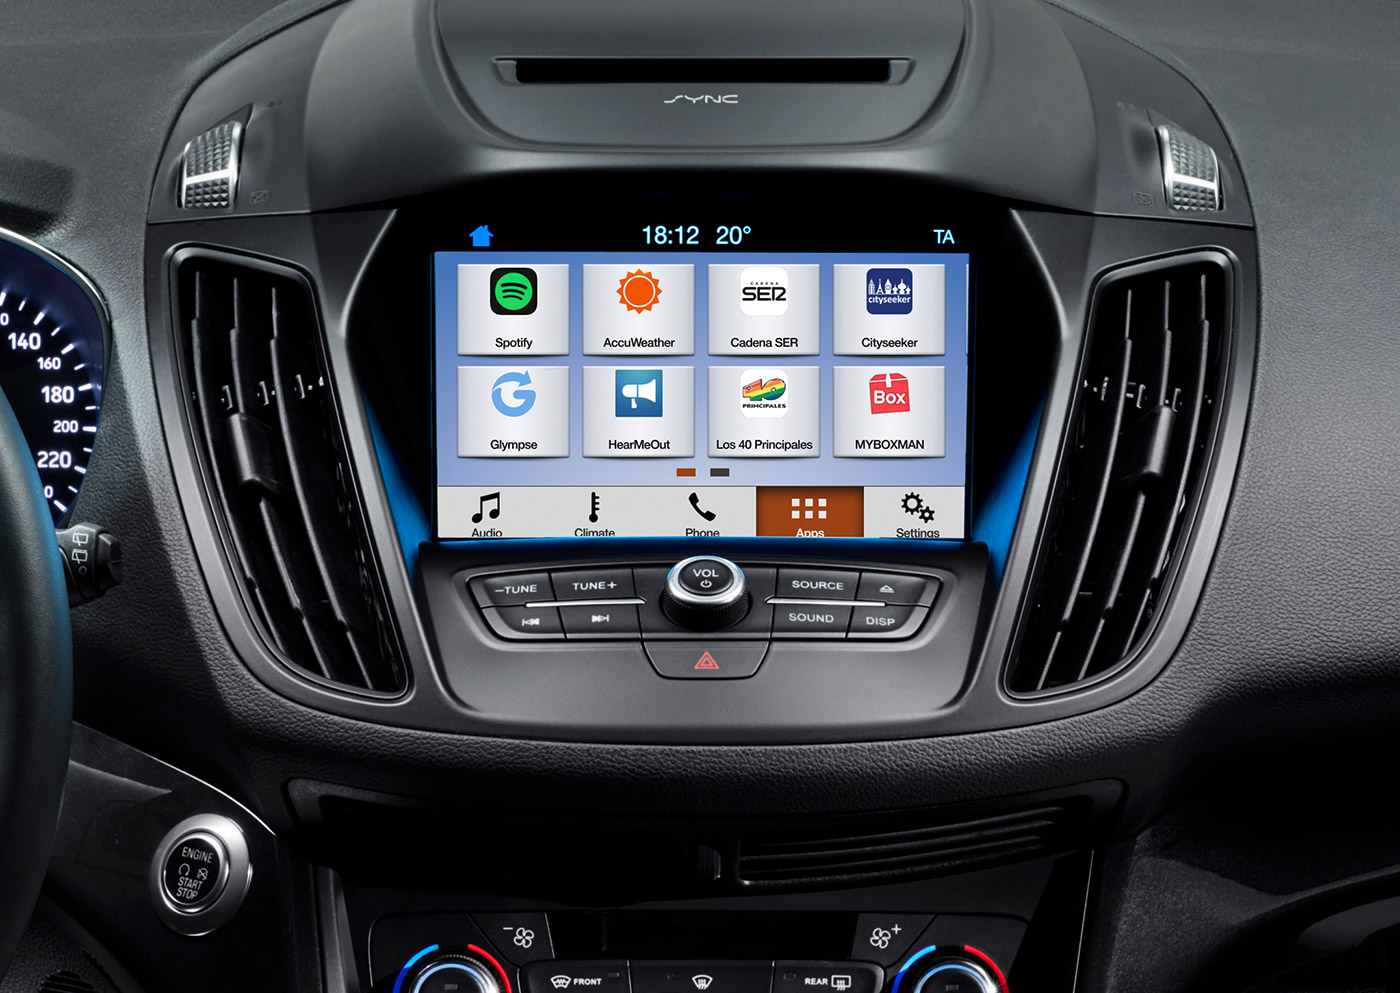 Ford Sync 3 is also heading to Europe this summer